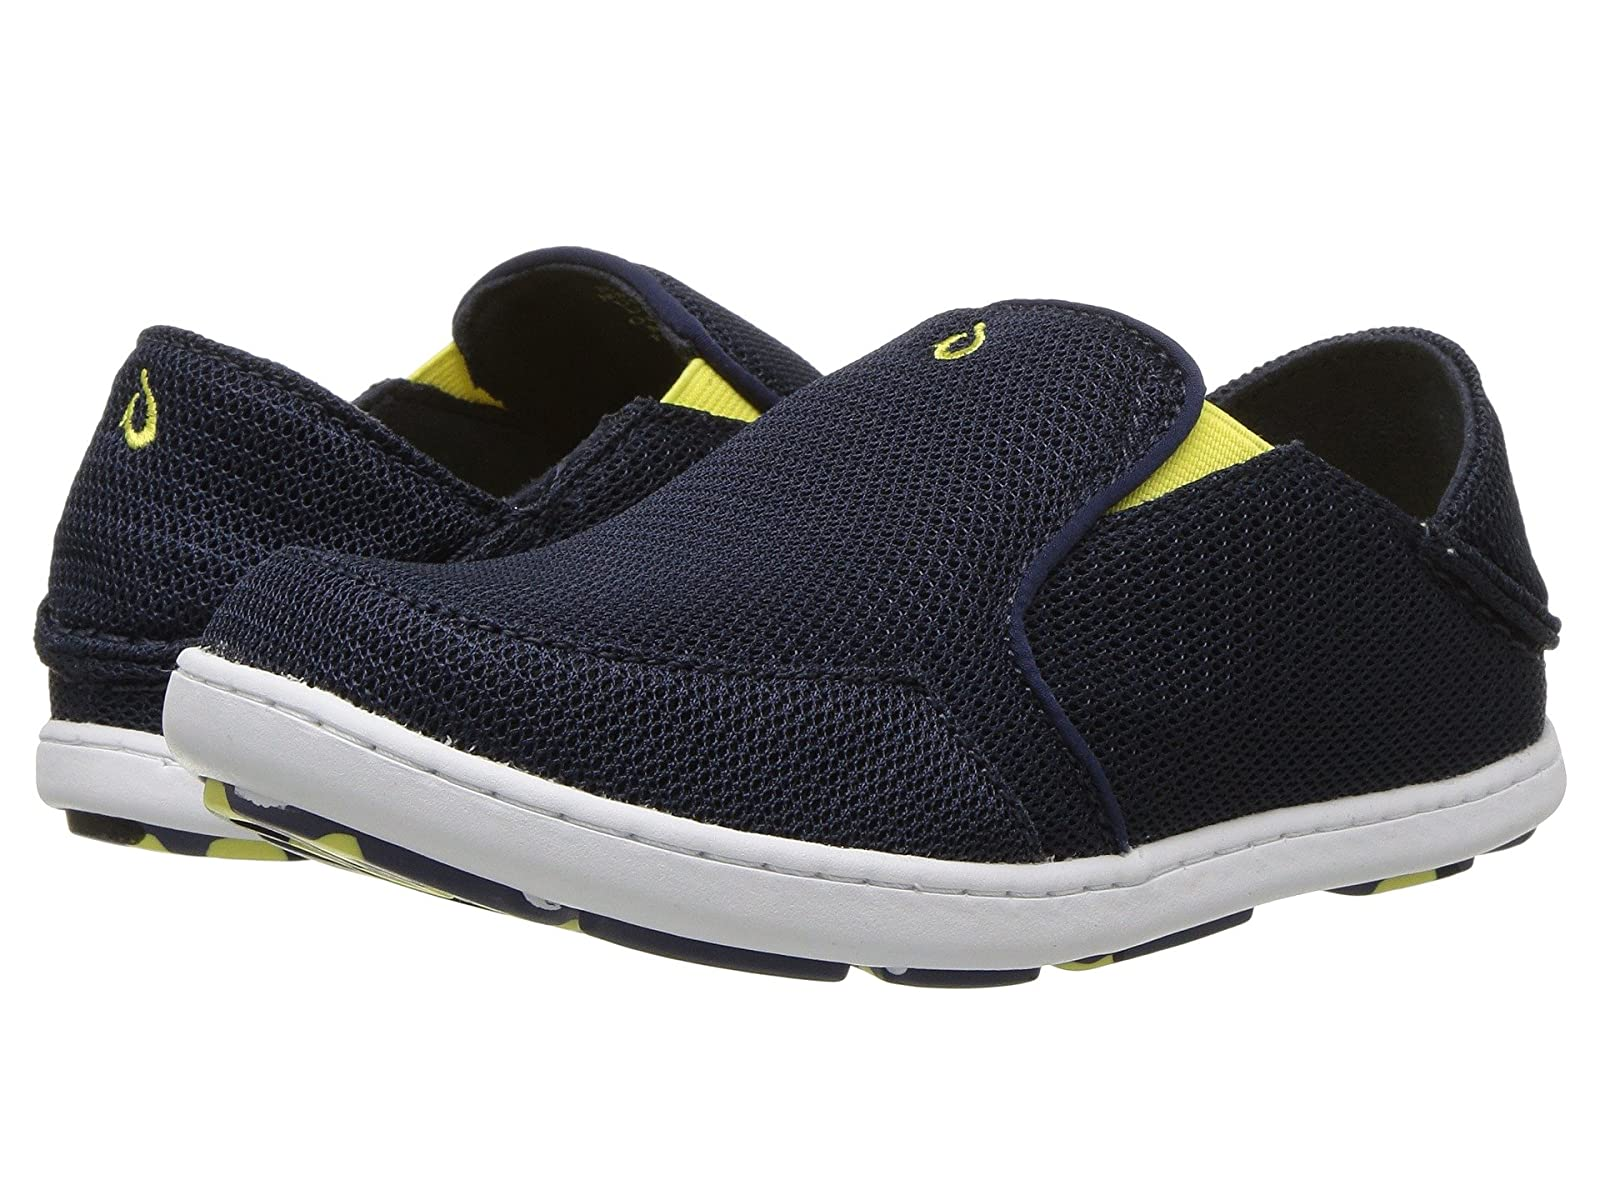 OluKai Kids Nohea Mesh (Toddler/Little Kid/Big Kid)Atmospheric grades have affordable shoes